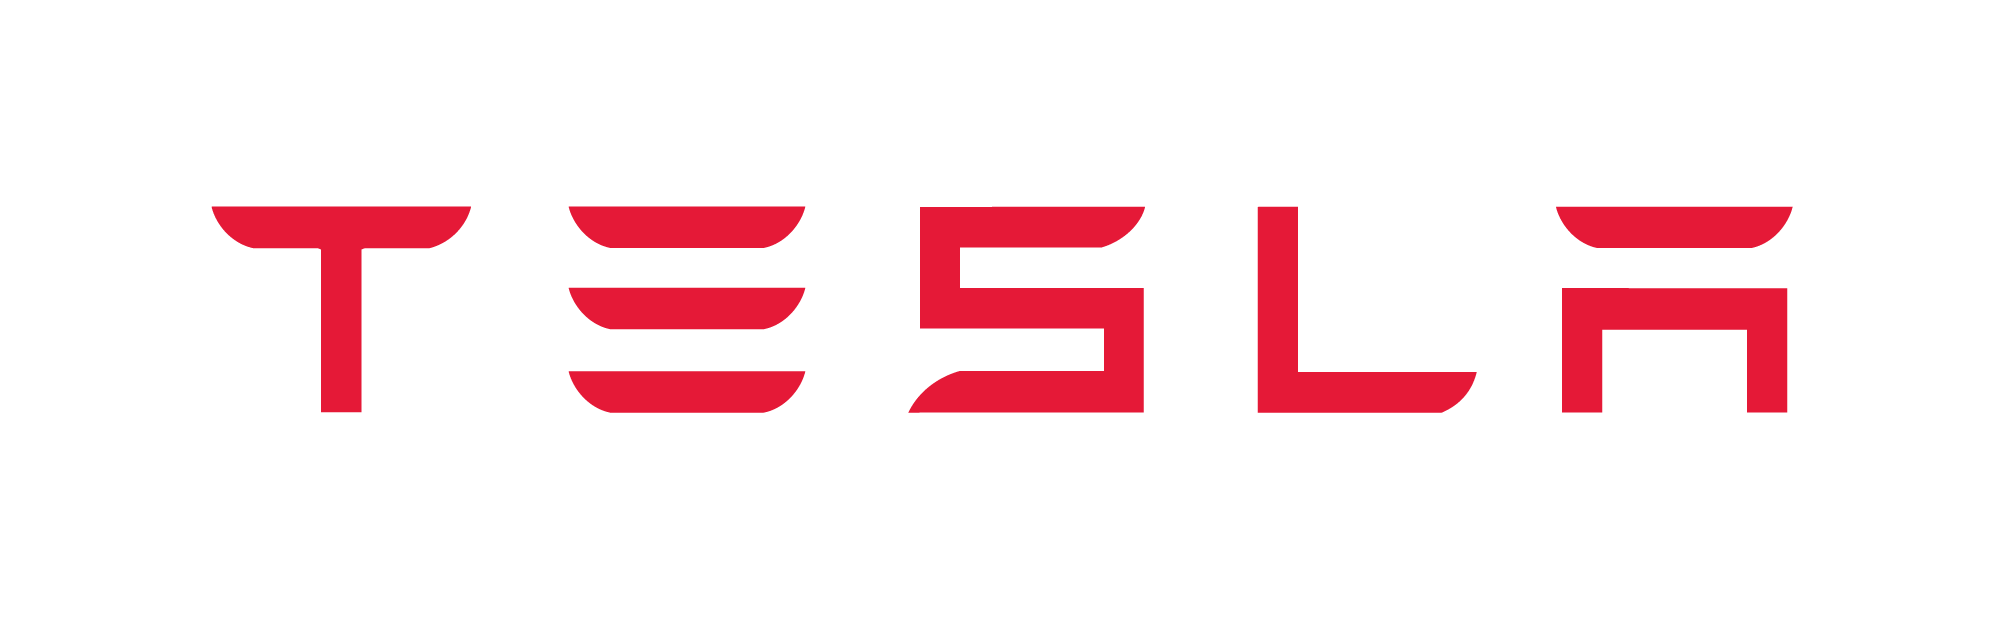 Tesla Wordmark Red